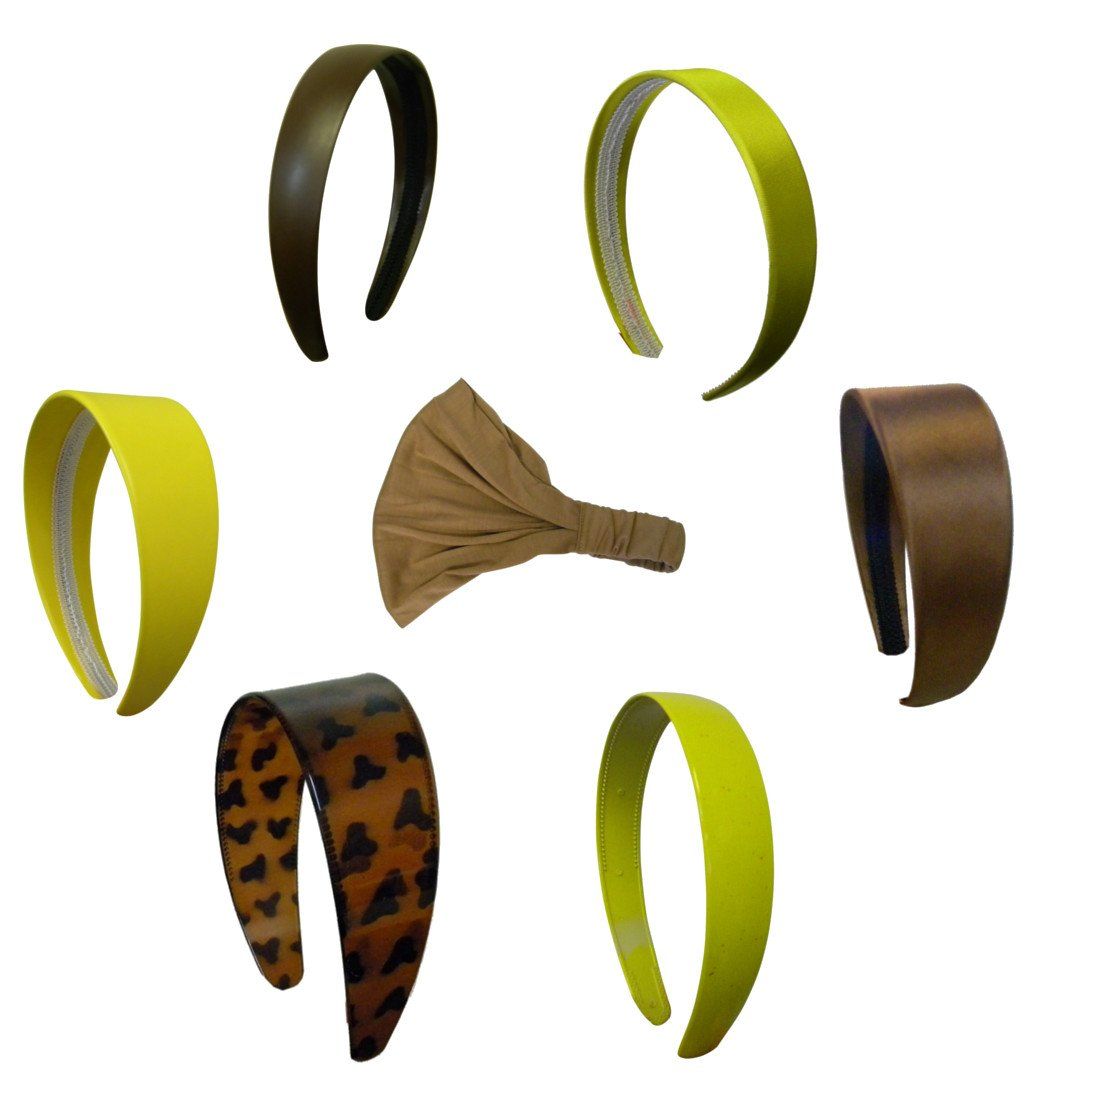 Tons Of Headbands! Plastic, Satin, Leather-Look Variety Set - Brown